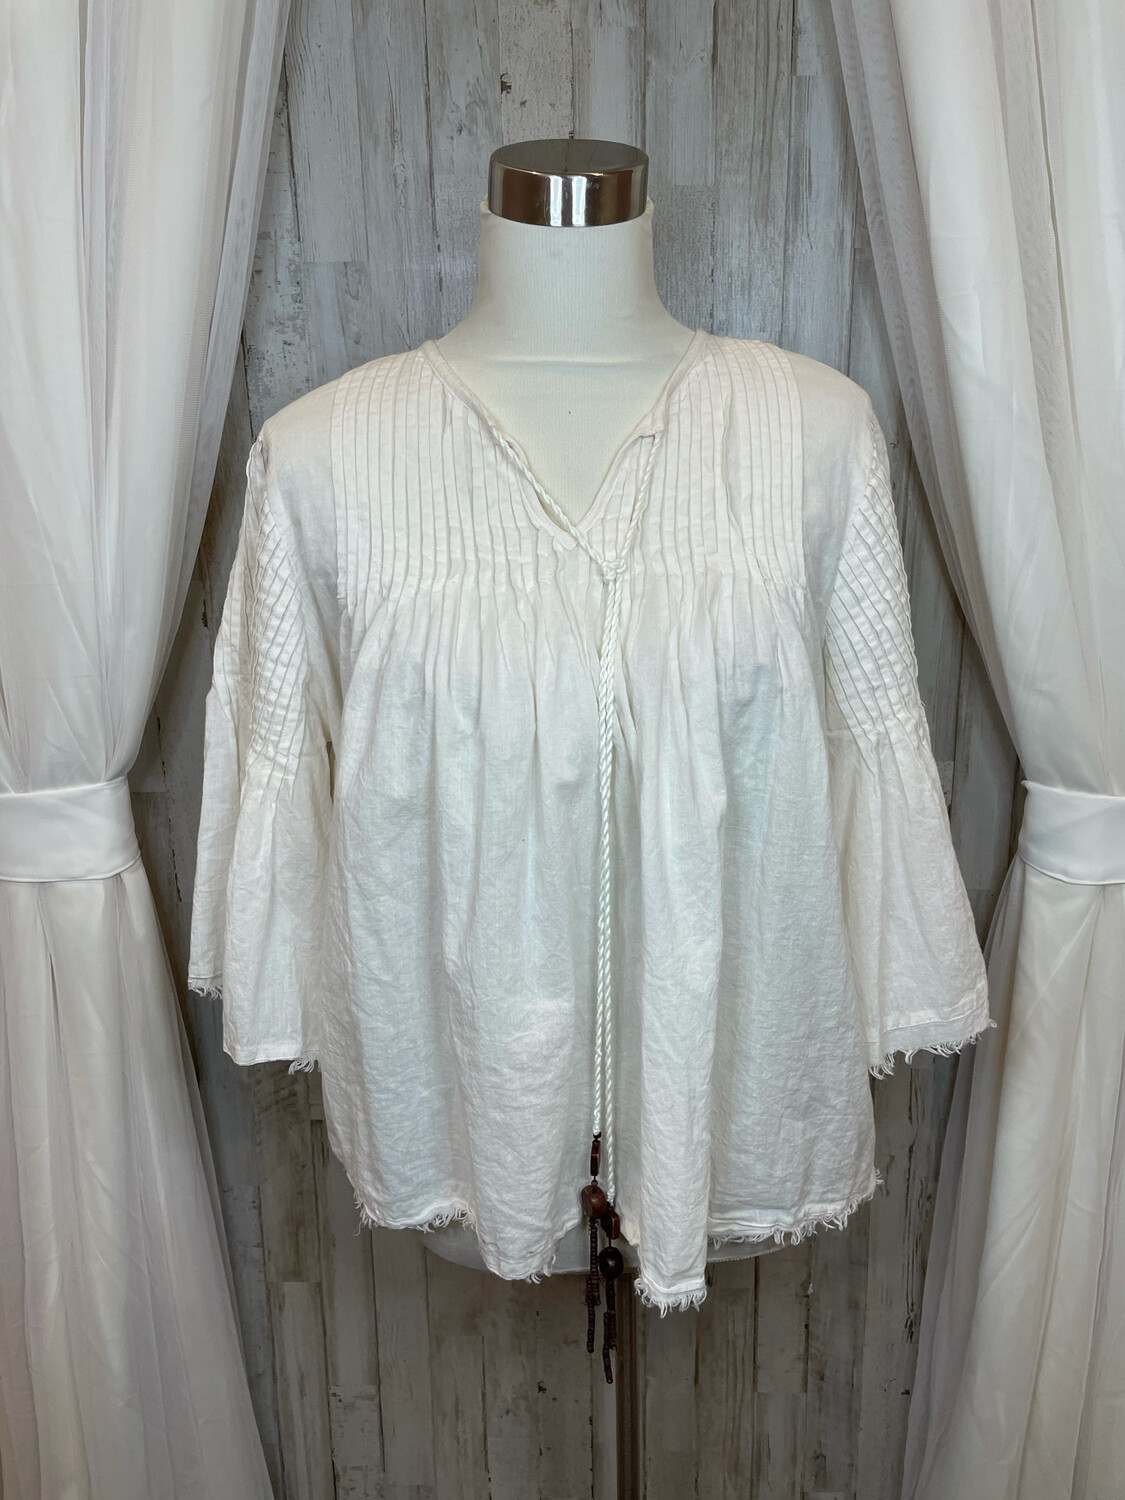 Charlie Paige Cream Top w/Bell Sleeve & Distressed Trim - S